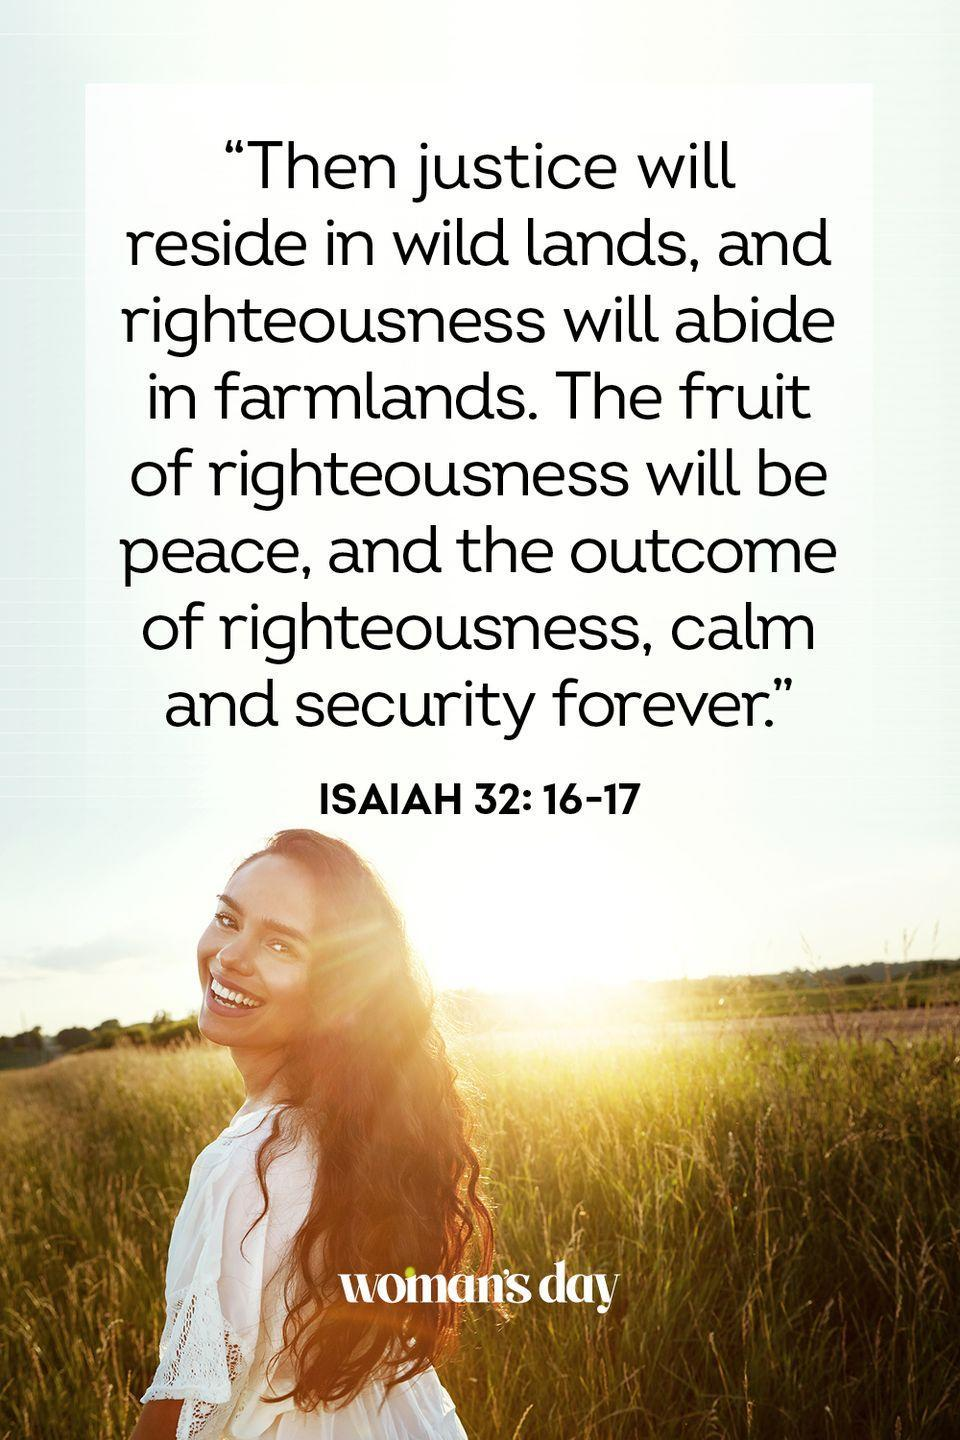 """<p>""""Then justice will reside in wild lands, and righteousness will abide in farmlands. The fruit of righteousness will be peace, and the outcome of righteousness, calm and security forever."""" — Isaiah 32: 16-17</p><p><strong>The Good News: </strong>God's soul-soothing peace and wondrous grace are available to all who place their faith in our Lord and Savior Jesus Christ.</p>"""